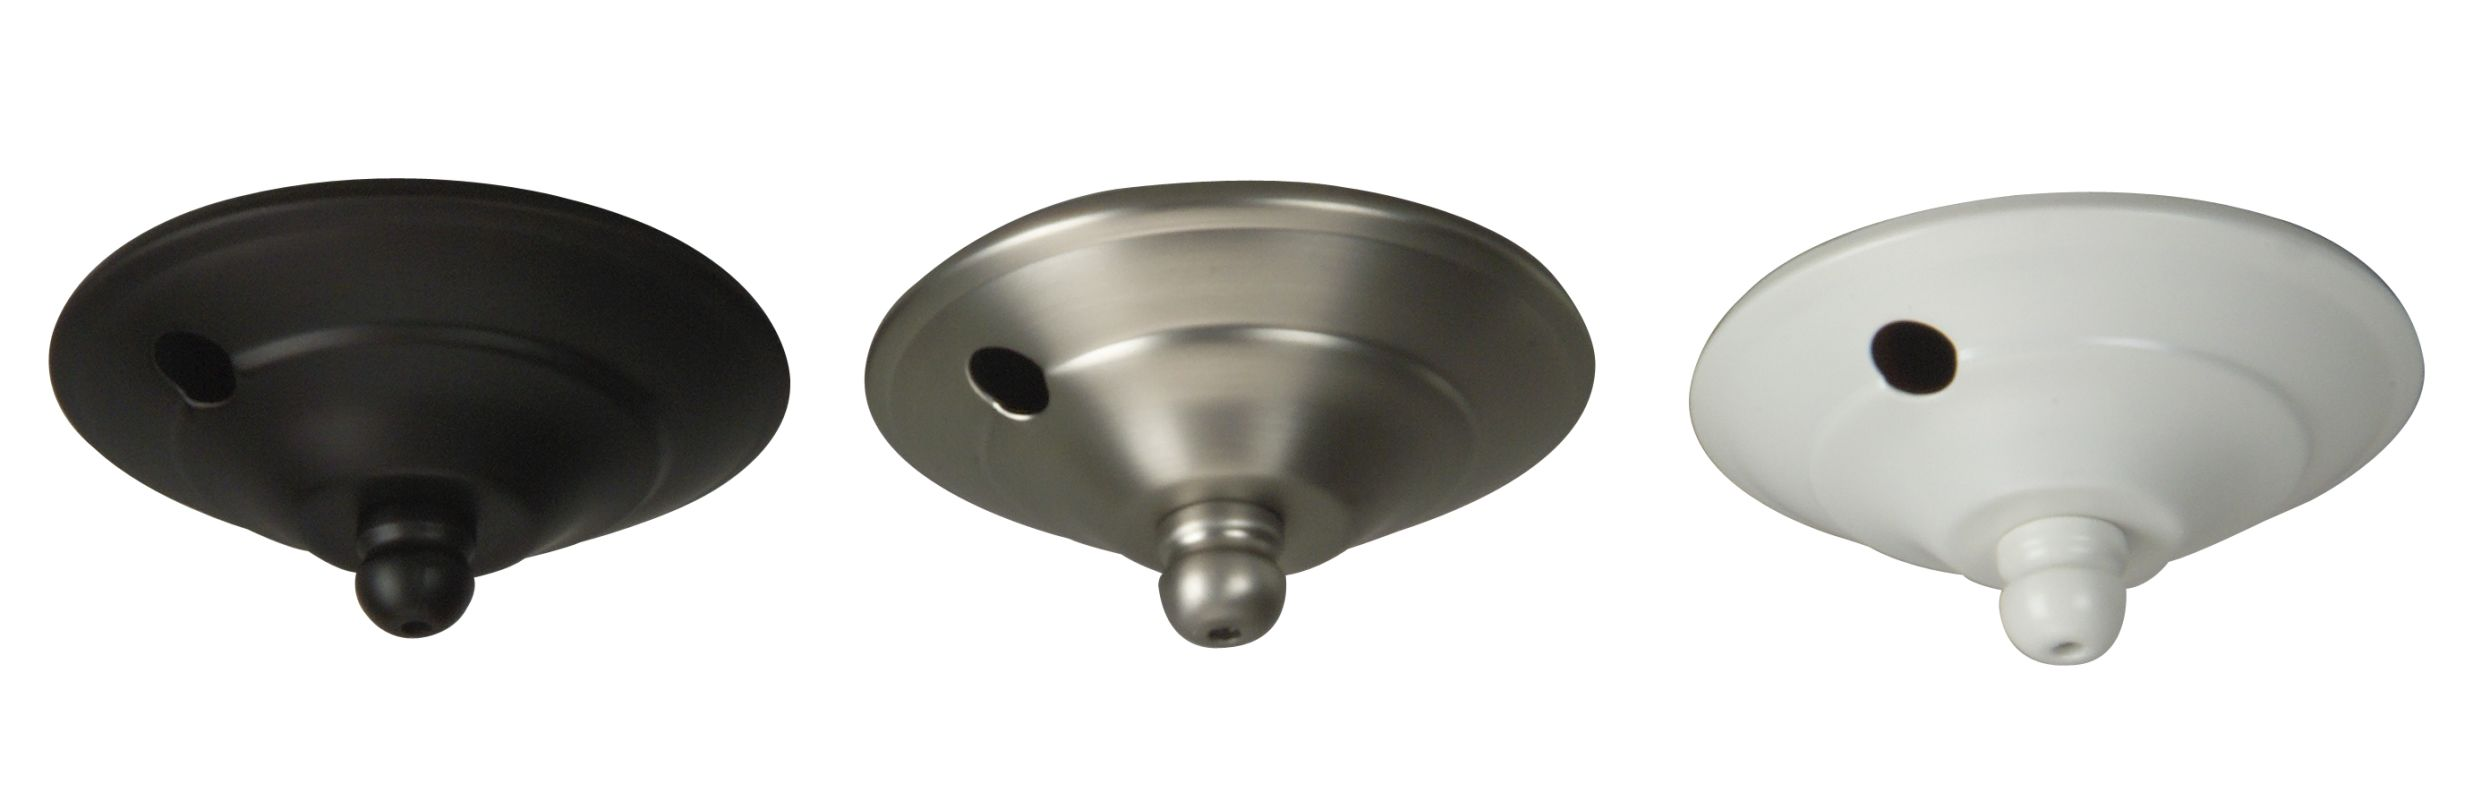 Craftmade RP-3802 Replacement Metal Cap for Craftmade Ceiling Fan Bowl